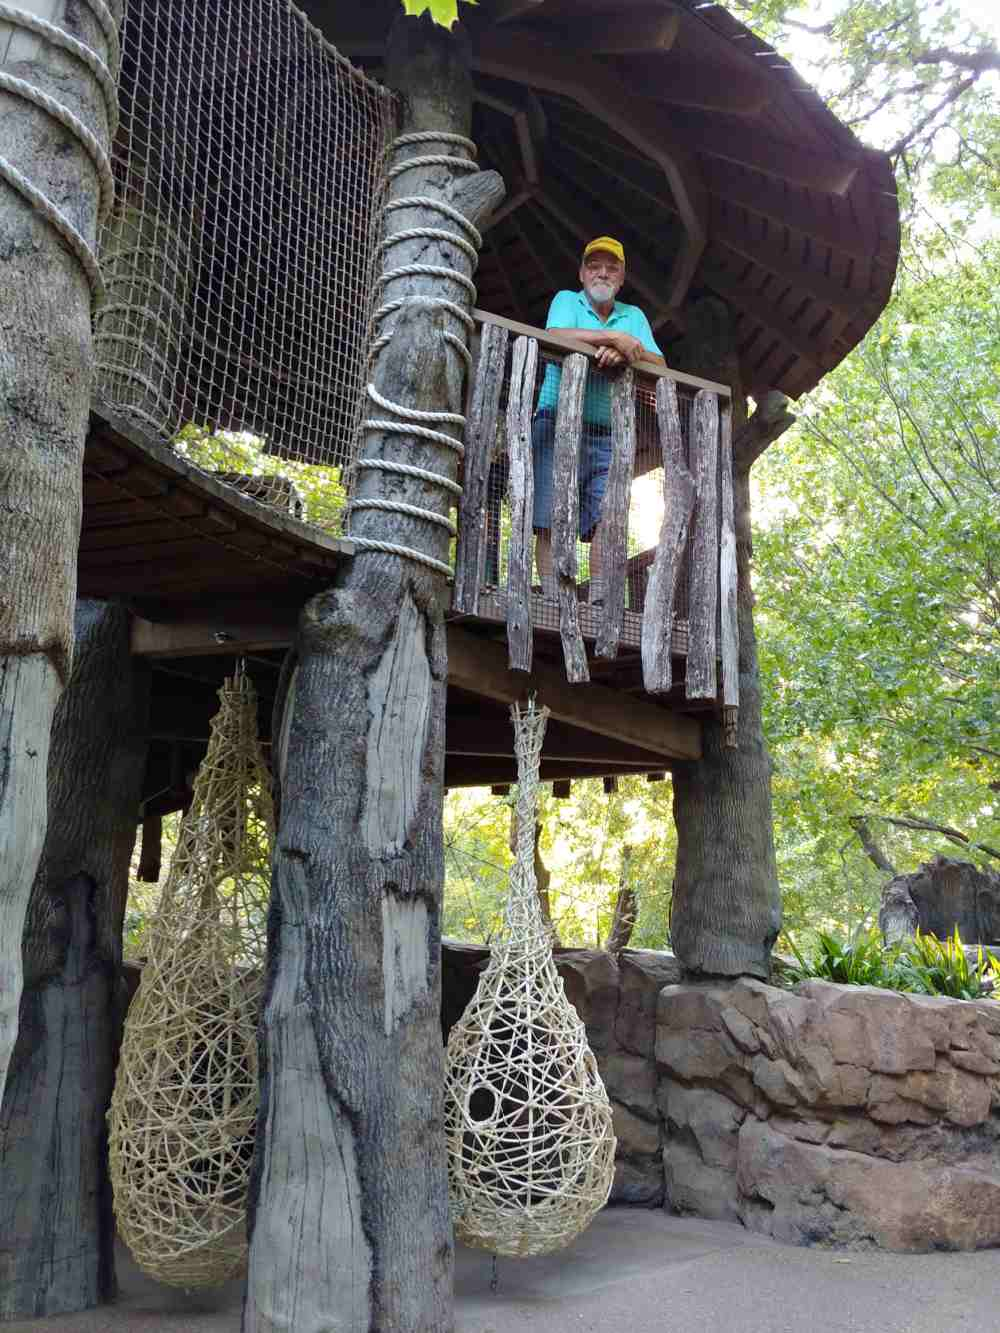 Man standing in a large treehouse.